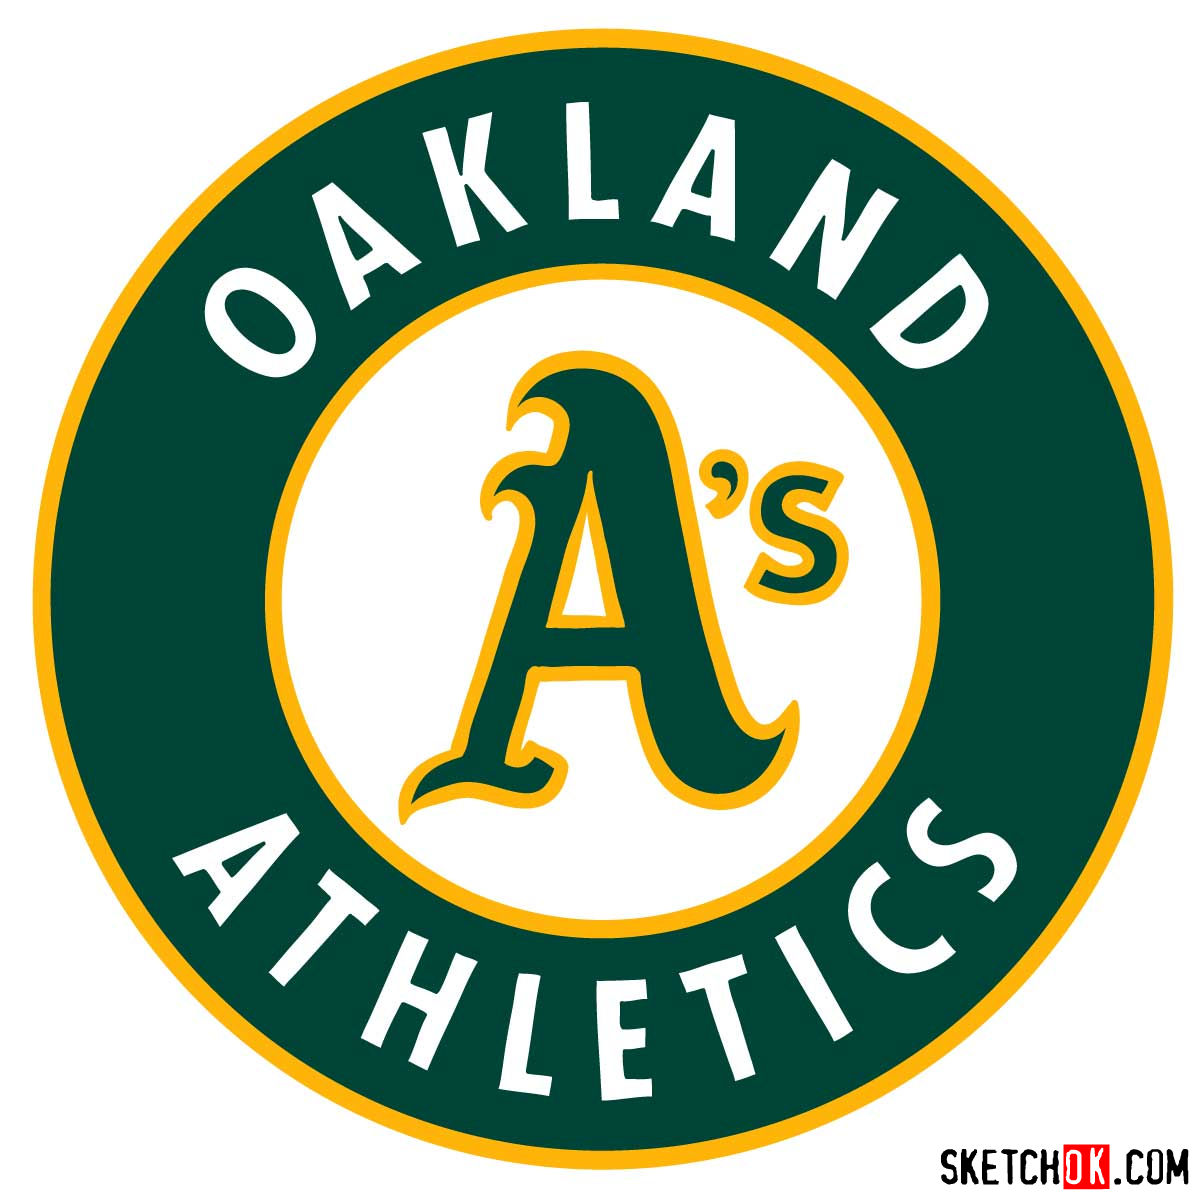 How to draw Oakland Athletics logo | MLB logos